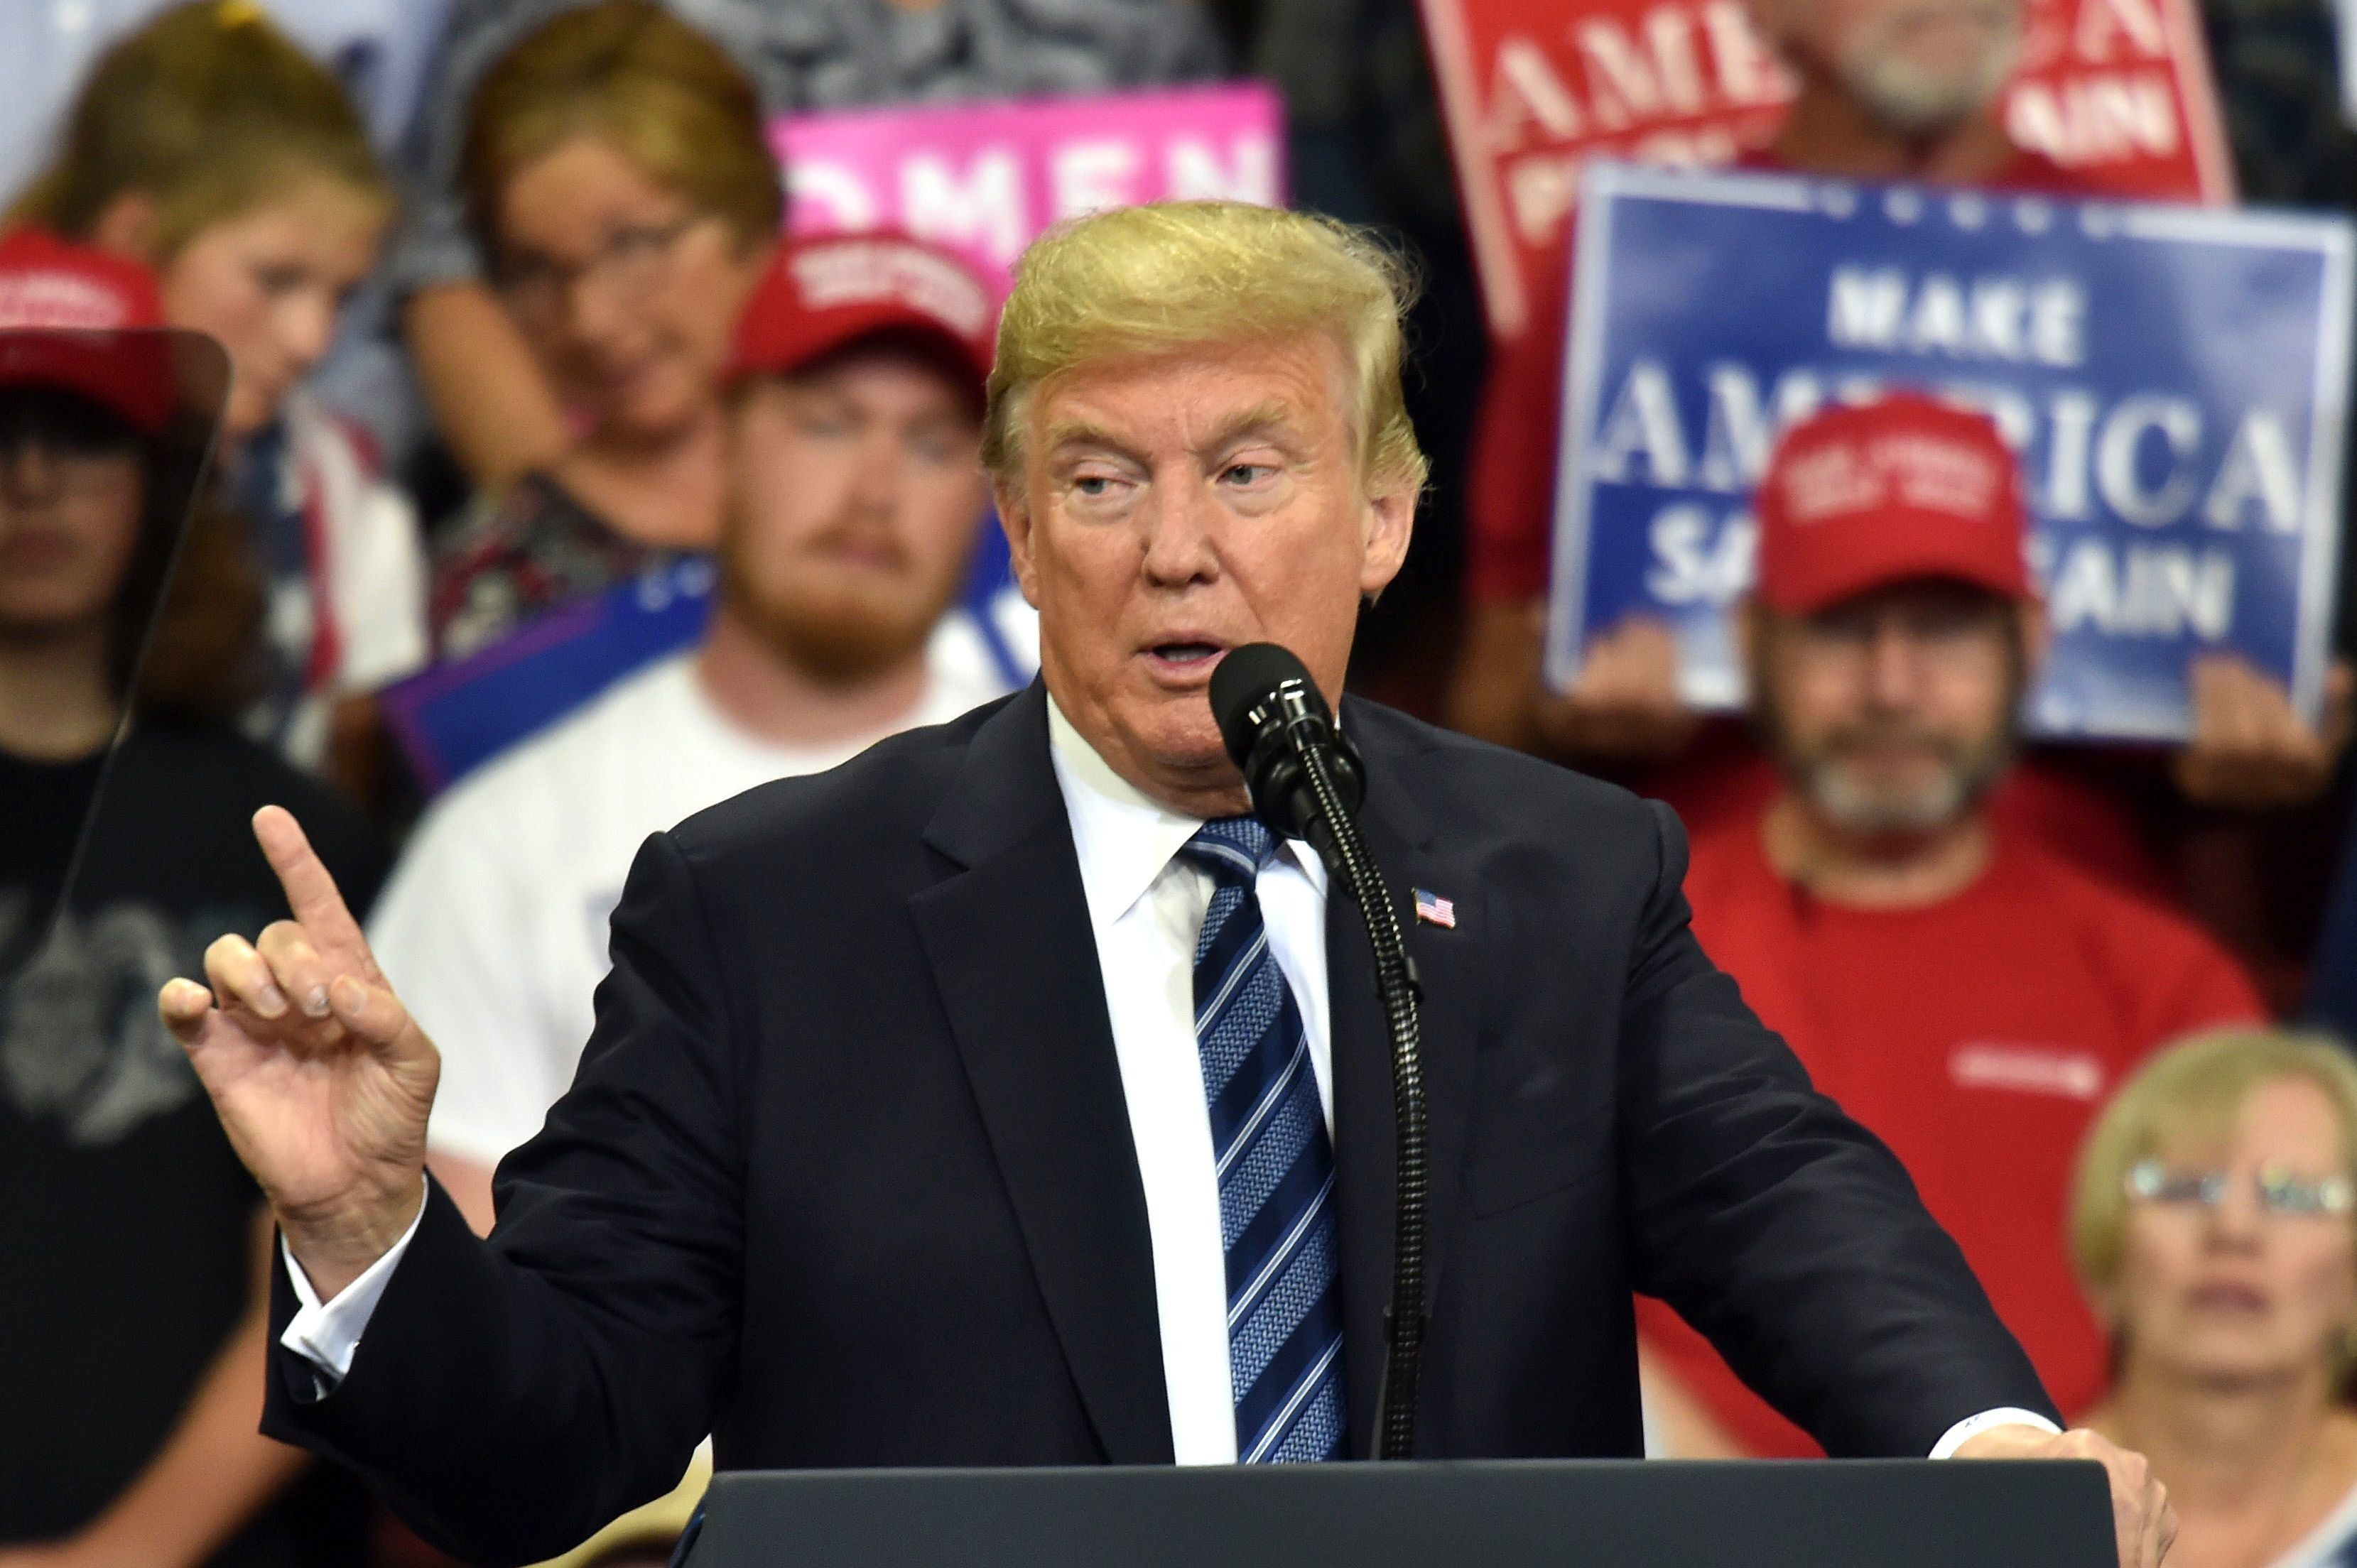 US President Donald Trump speaks during a 'Make America Great Again' rally in Billings, Montana on September 6, 2018. (Photo by NICHOLAS KAMM / AFP)        (Photo credit should read NICHOLAS KAMM/AFP/Getty Images)